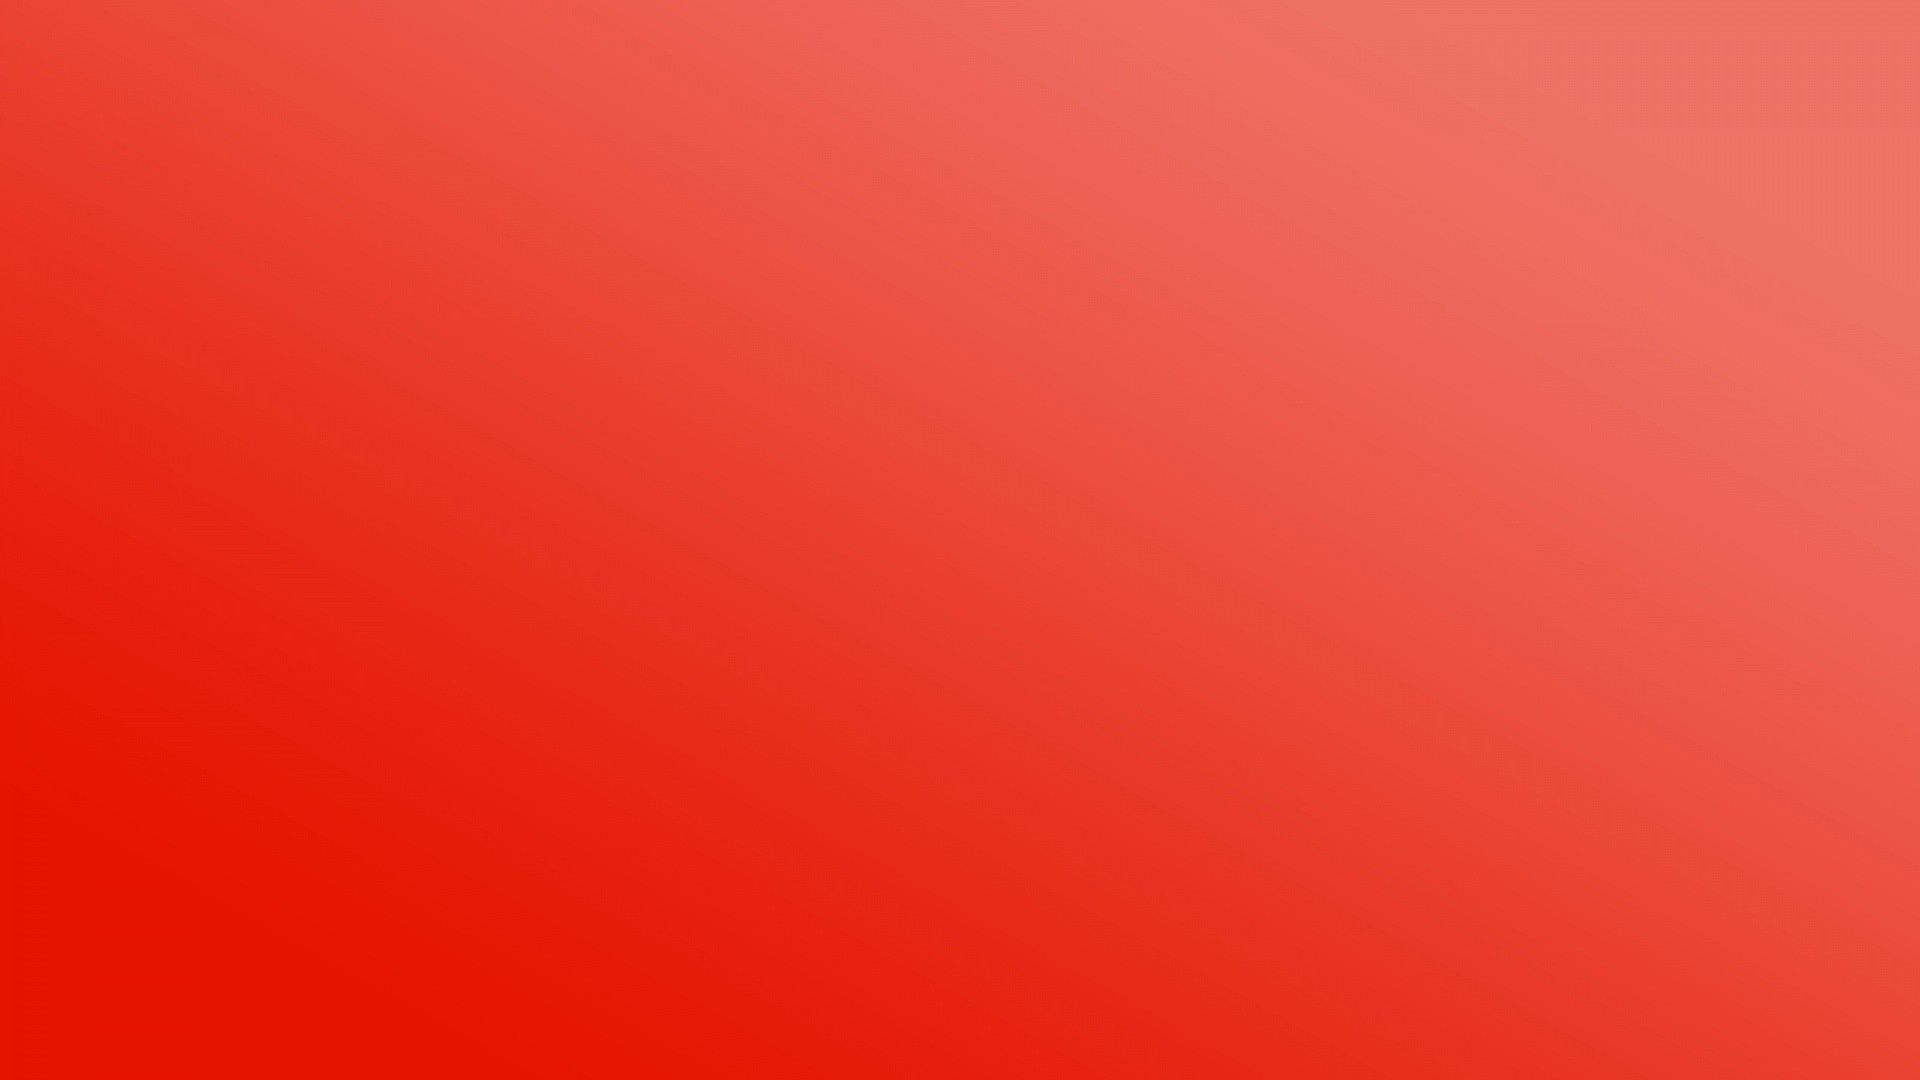 Solid Red Wallpaper (69+ images)